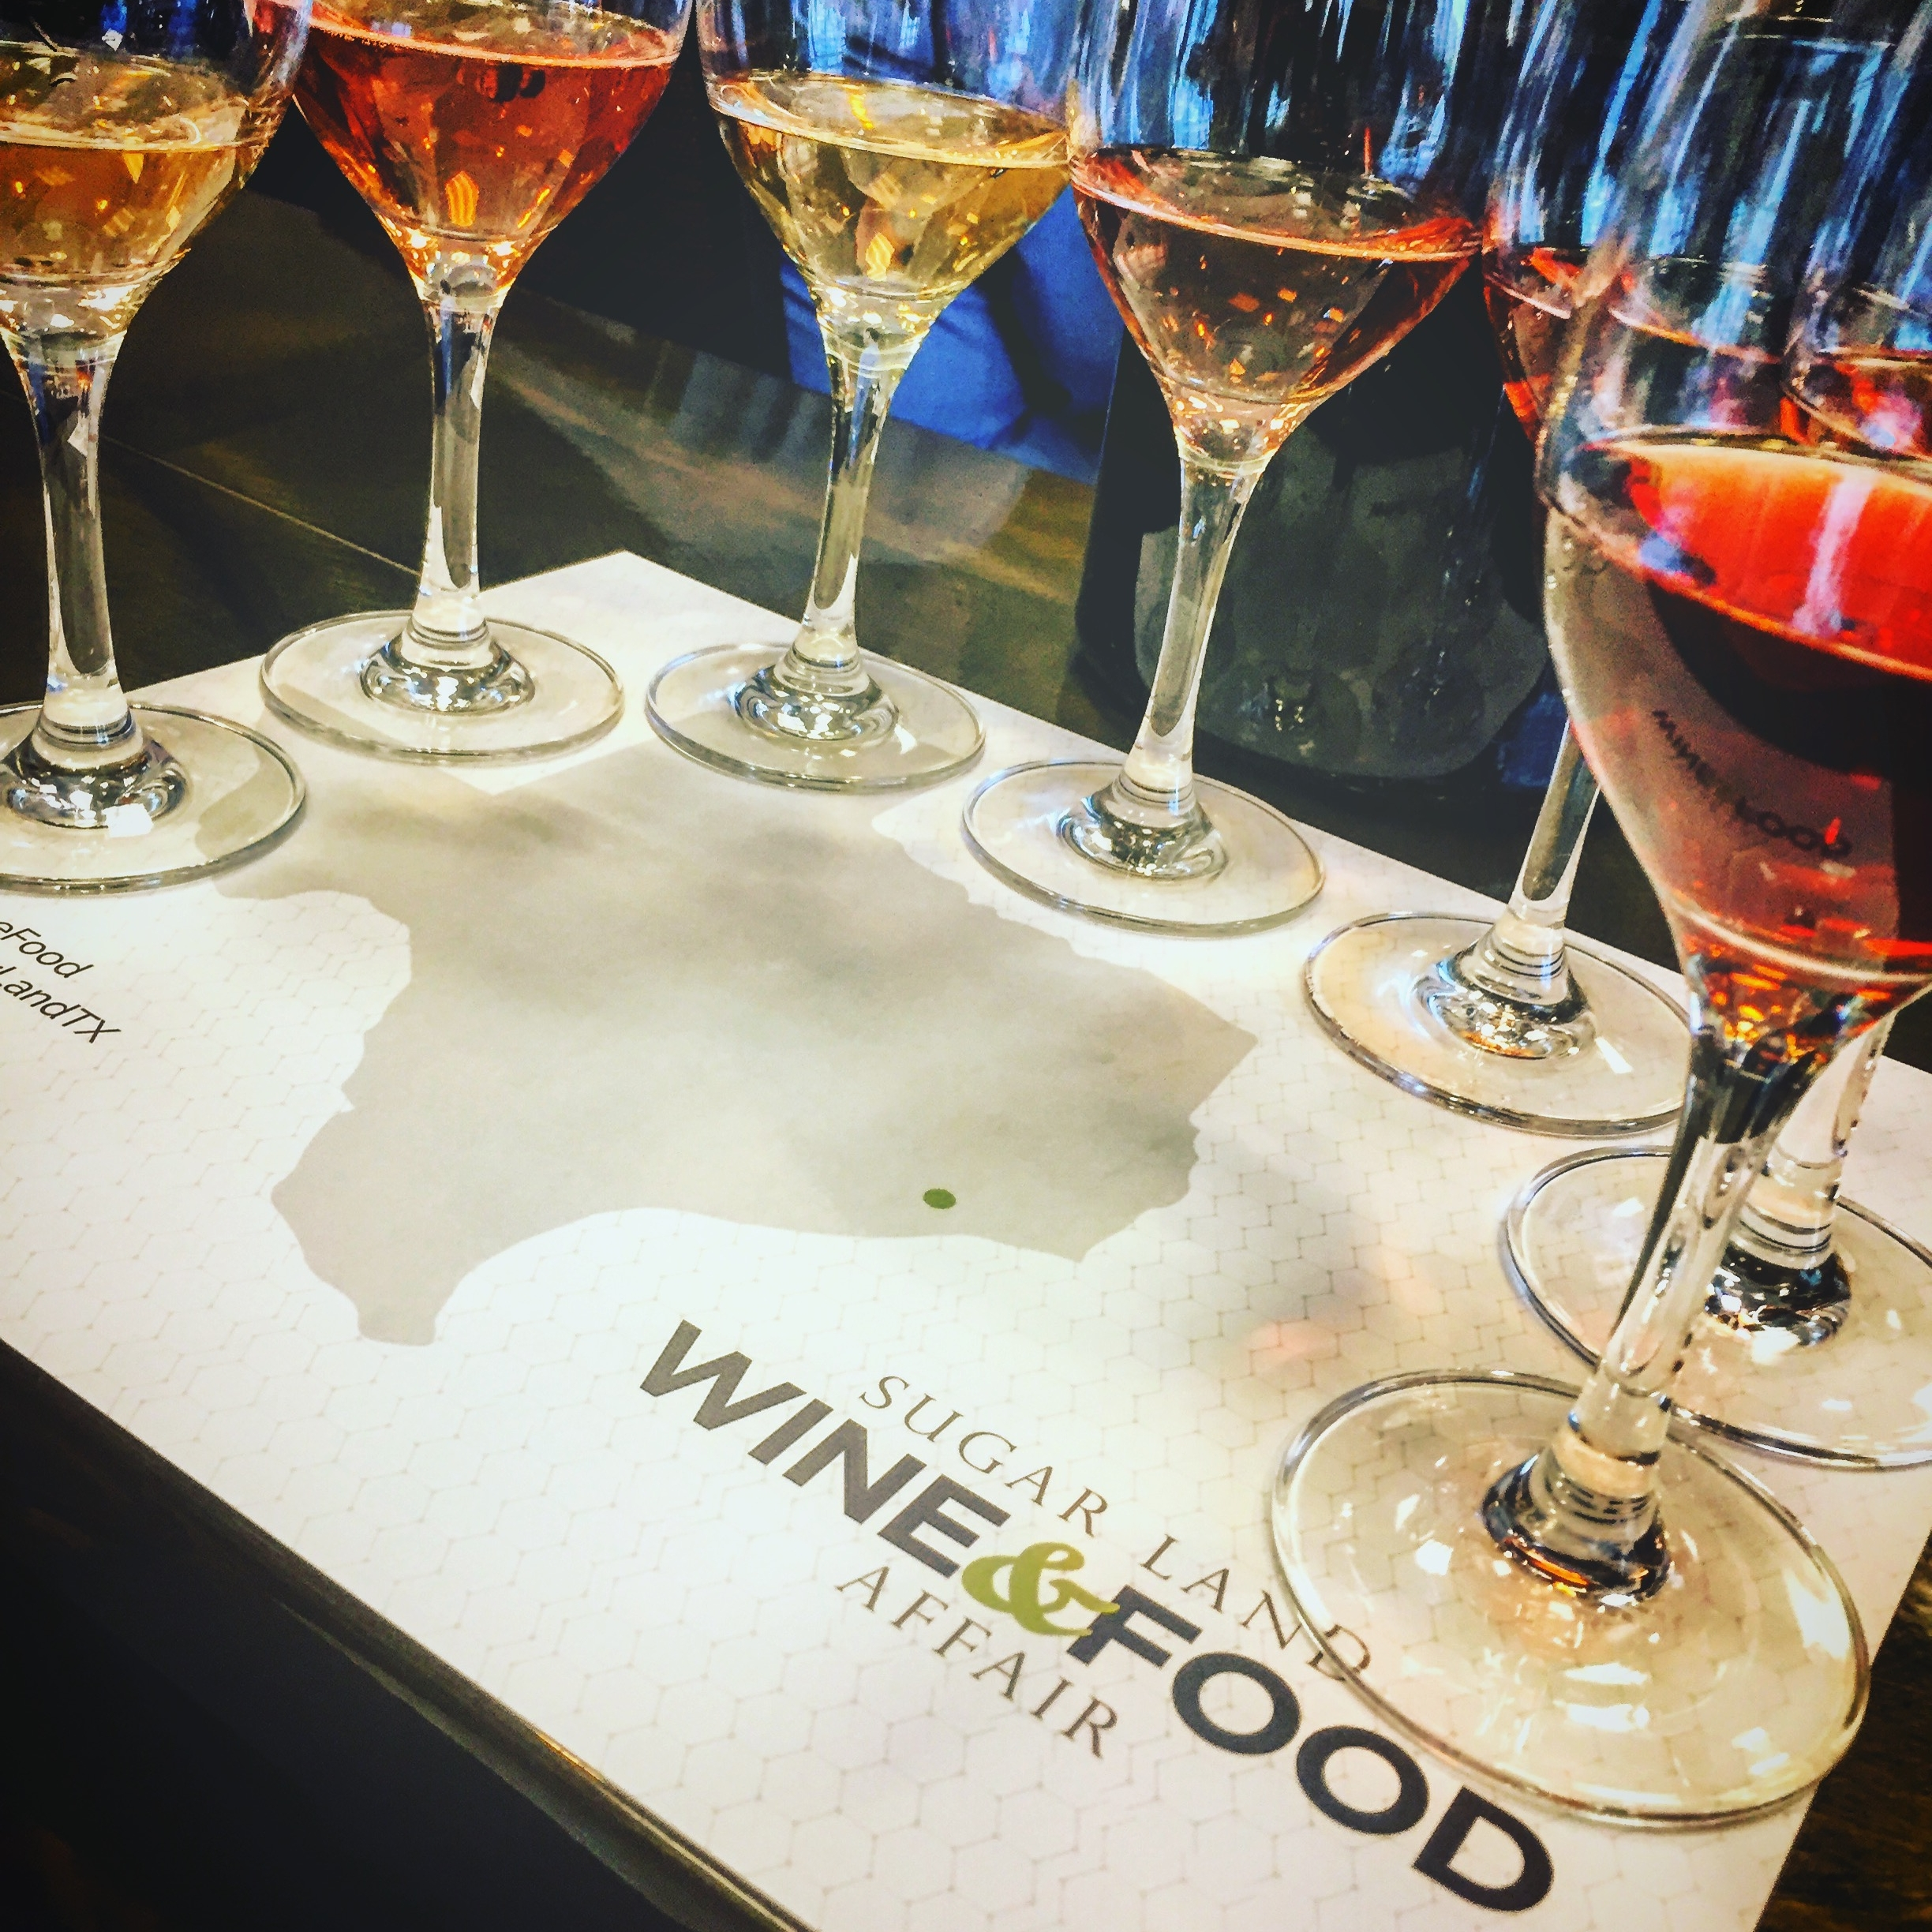 SUGAR LAND WINE & FOOD AFFAIR - EVENT PRODUCTION | APRIL 2018 & APRIL 2017 | HOUSTON, TX